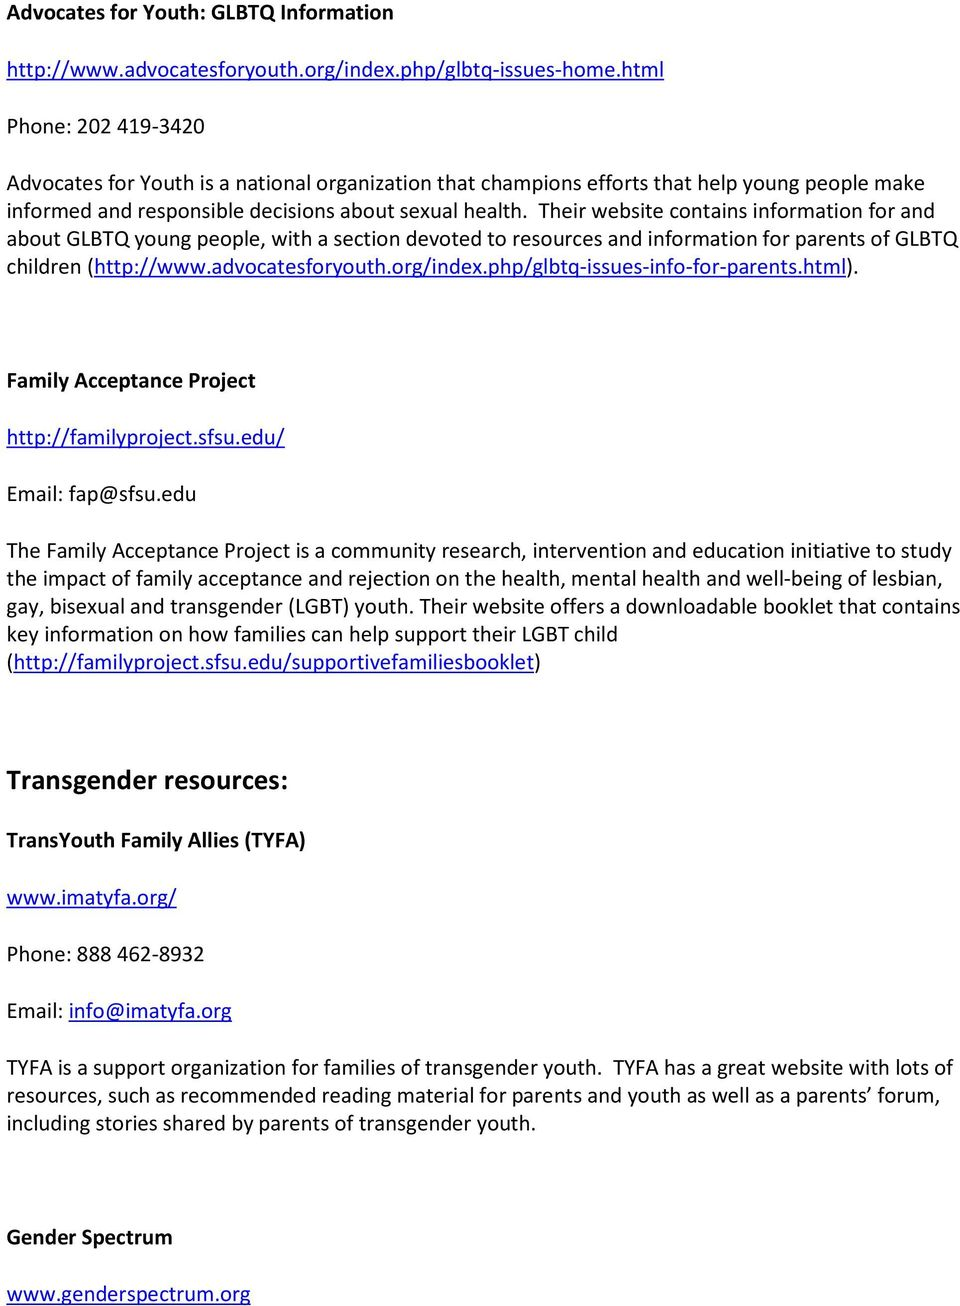 Their website contains information for and about GLBTQ young people, with a section devoted to resources and information for parents of GLBTQ children (http://www.advocatesforyouth.org/index.